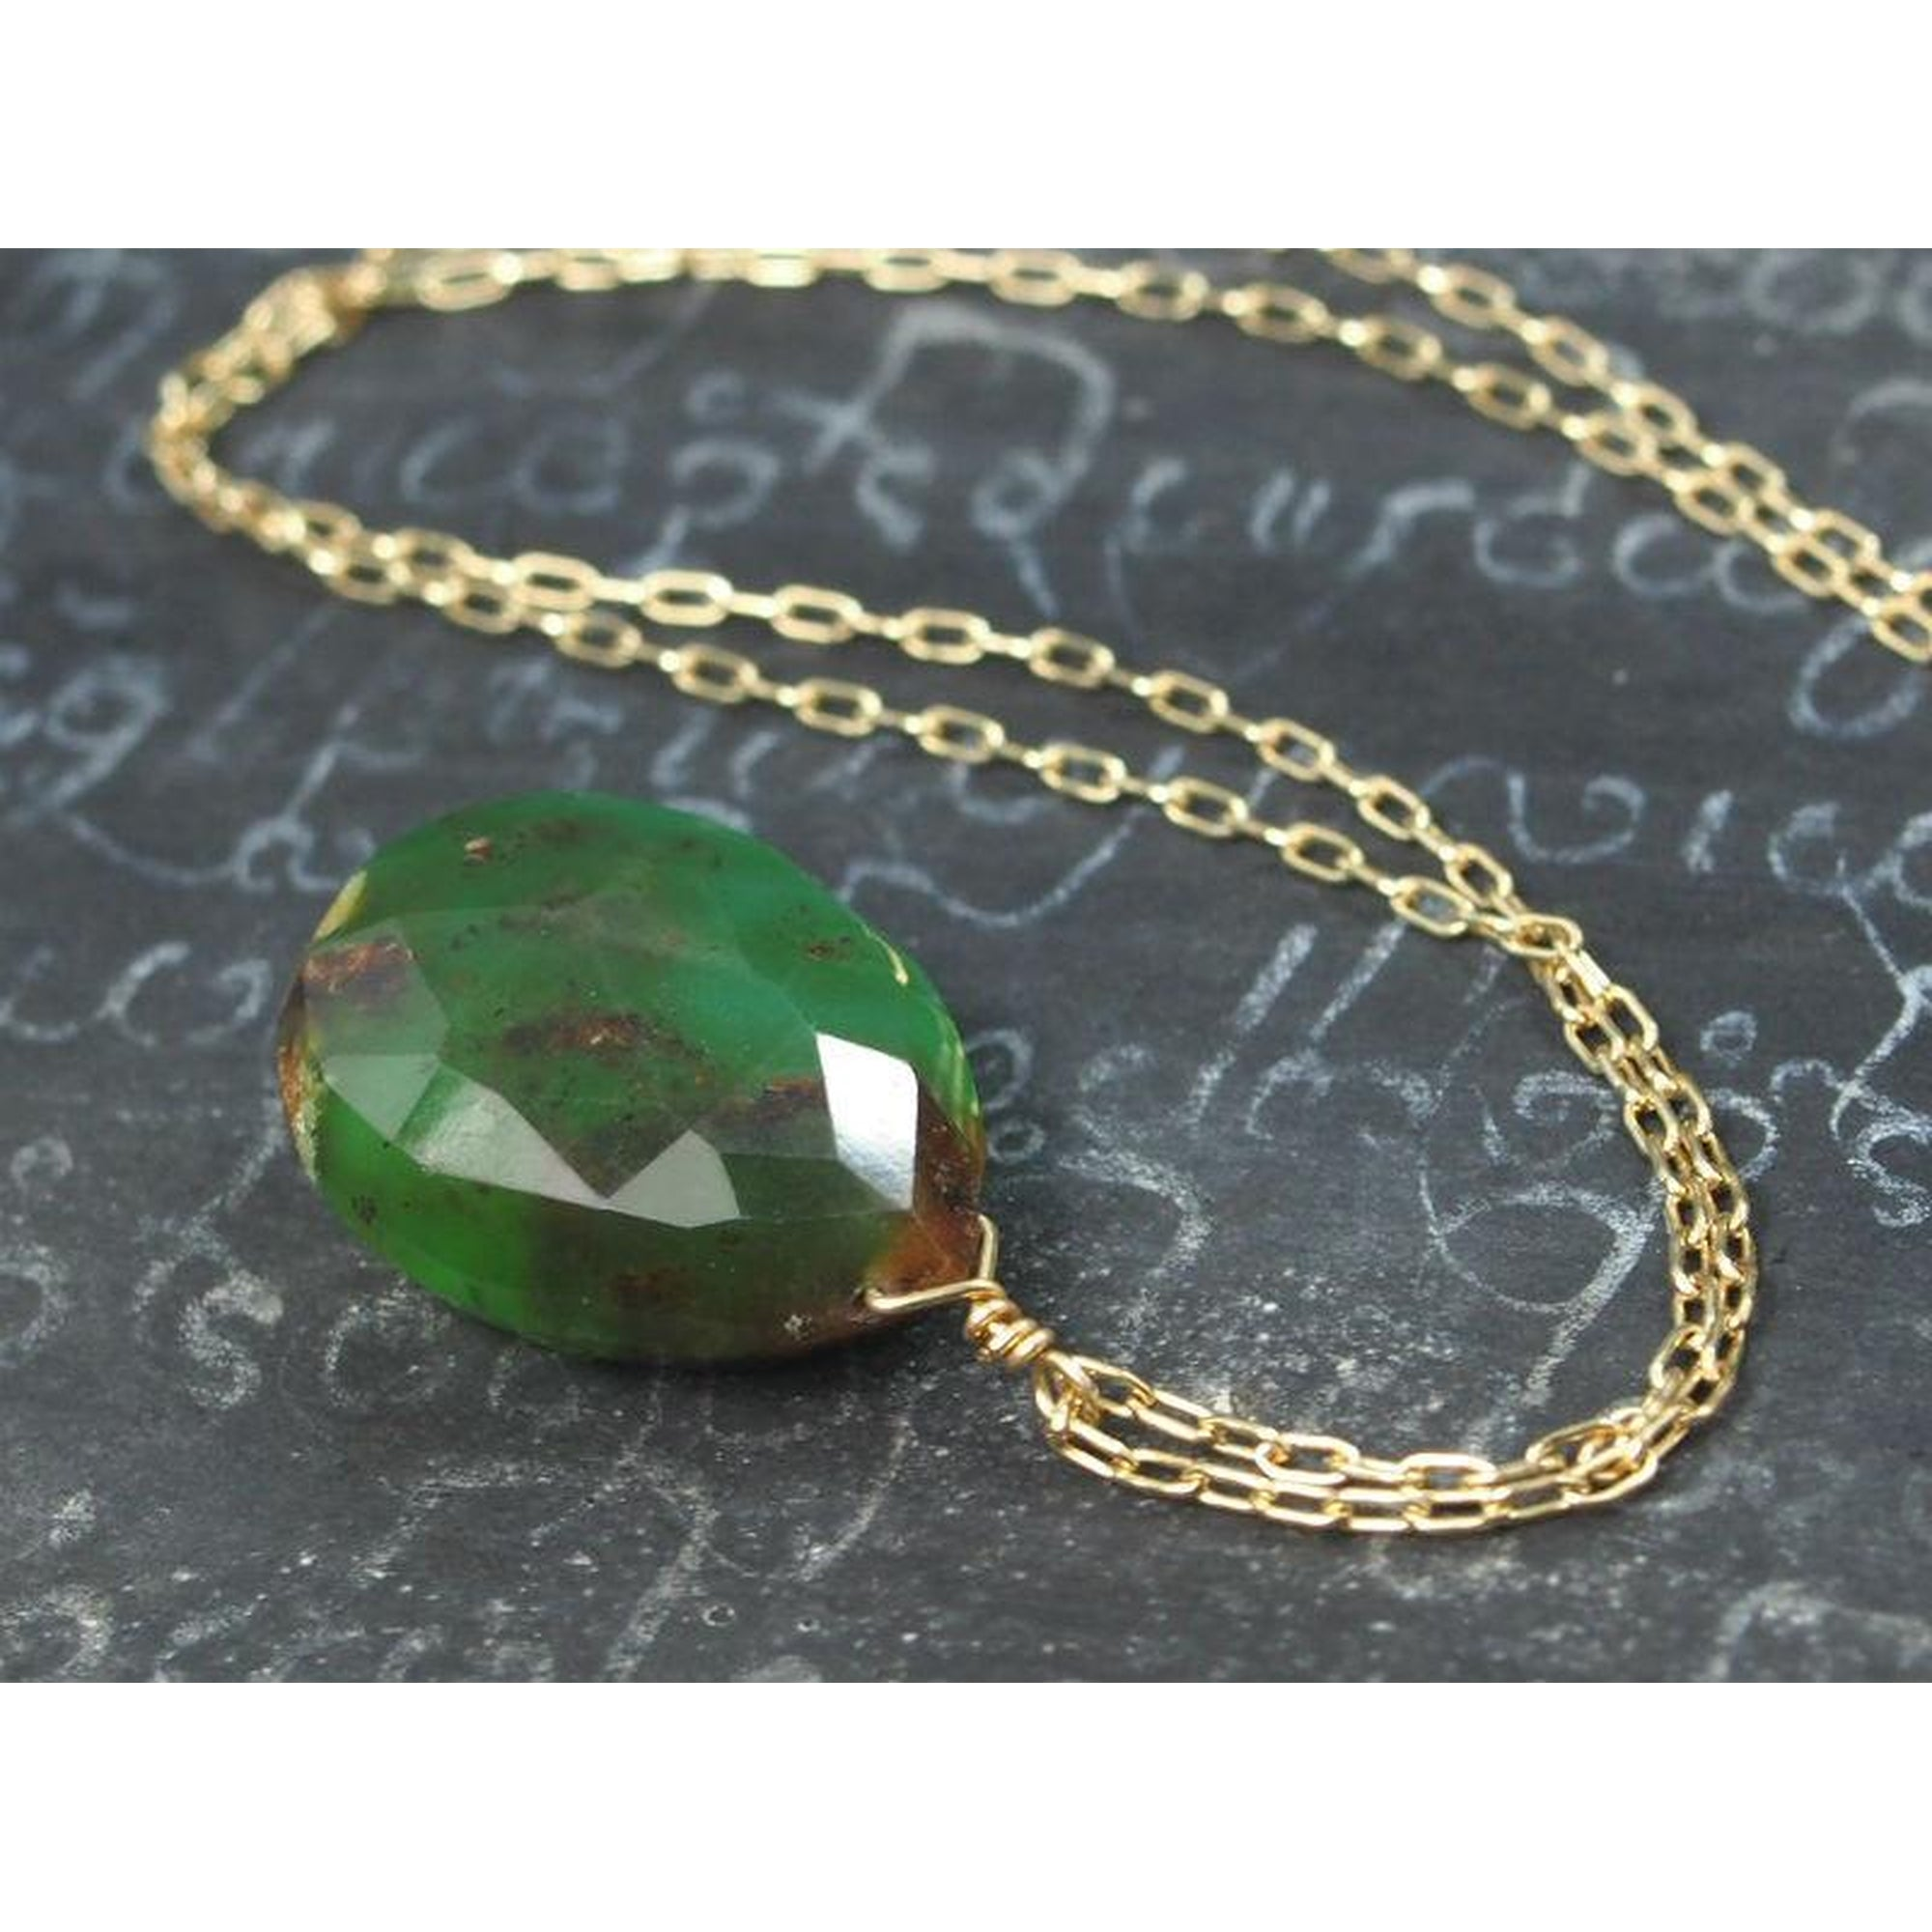 pendant brown silver hammered gemstone sterling and paul by necklace green stone lizardi handmade chrysoprase teardrop bicolor